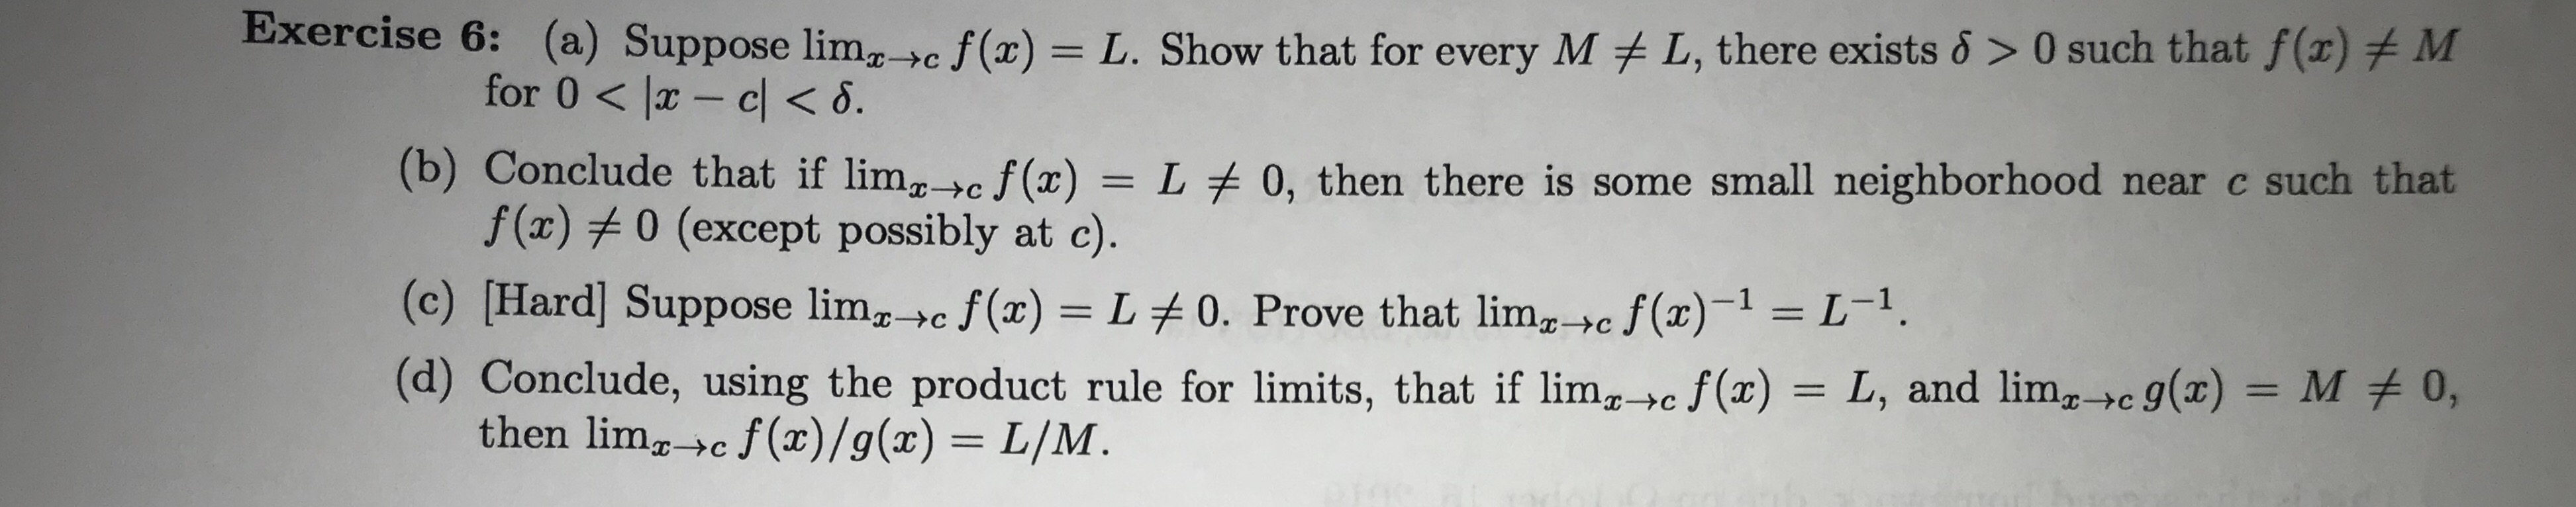 Exercise 6:(a) Suppose lim_>c f(x) = L. Show that for every M L, there exists & > 0 such that f(x) M C for 0 lx- cl< 6. (b) Conclude that if limcf(x) = L 0, then there is some small neighborhood near c such that f (x)0 (except possibly at c). (c) [Hard] Suppose limc f(x) L 0. Prove that limc f(x)1 L-. (d) Conclude, using the product rule for limits, that if limg,c f(x) = L, and lim,c g(x) = M # 0, then limgc f(x)/g(x) = L/M. >C